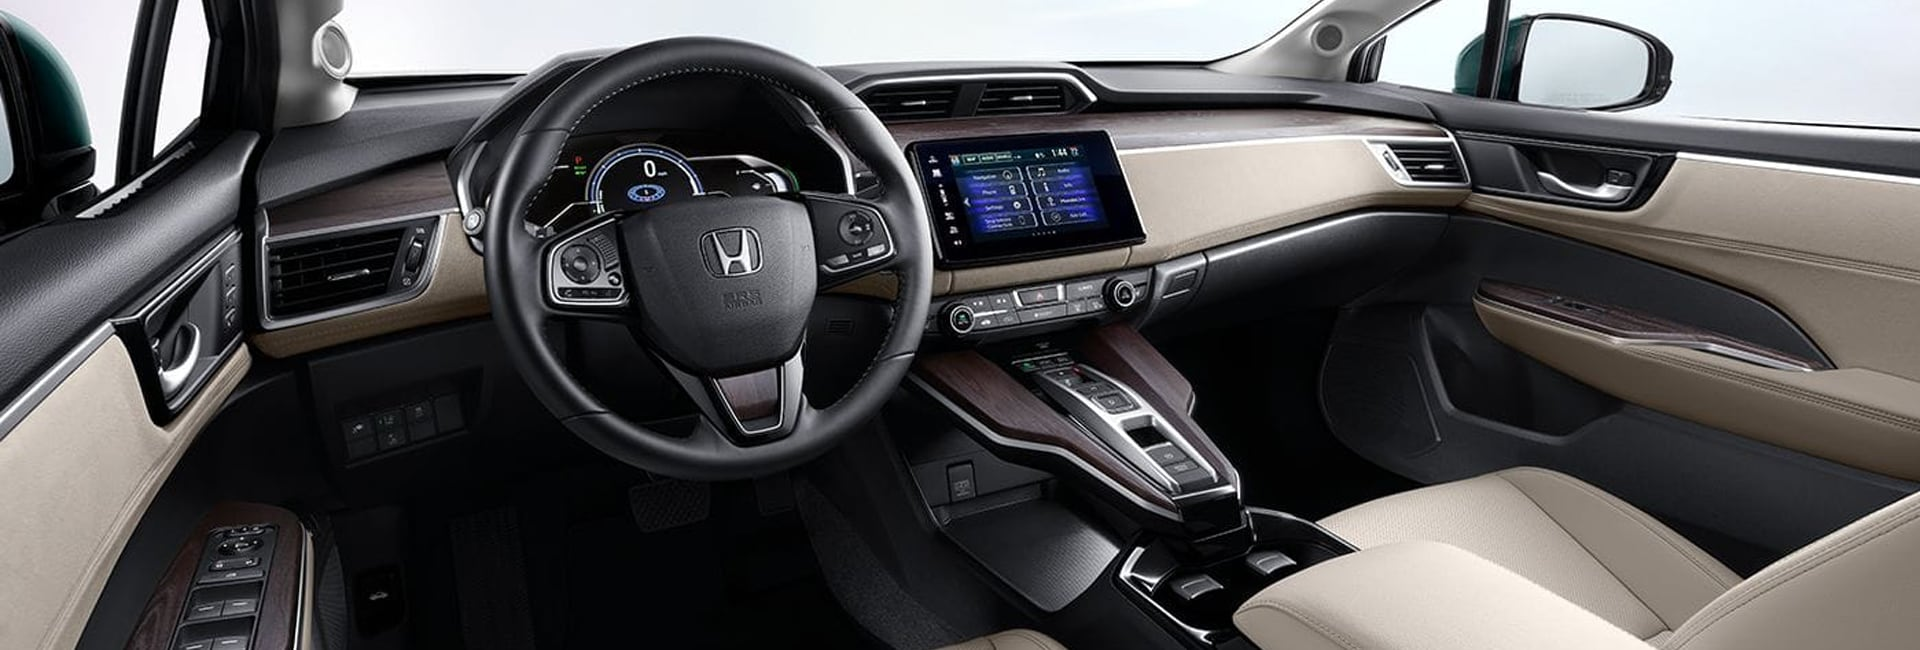 2020 Honda Clarity Interior Features